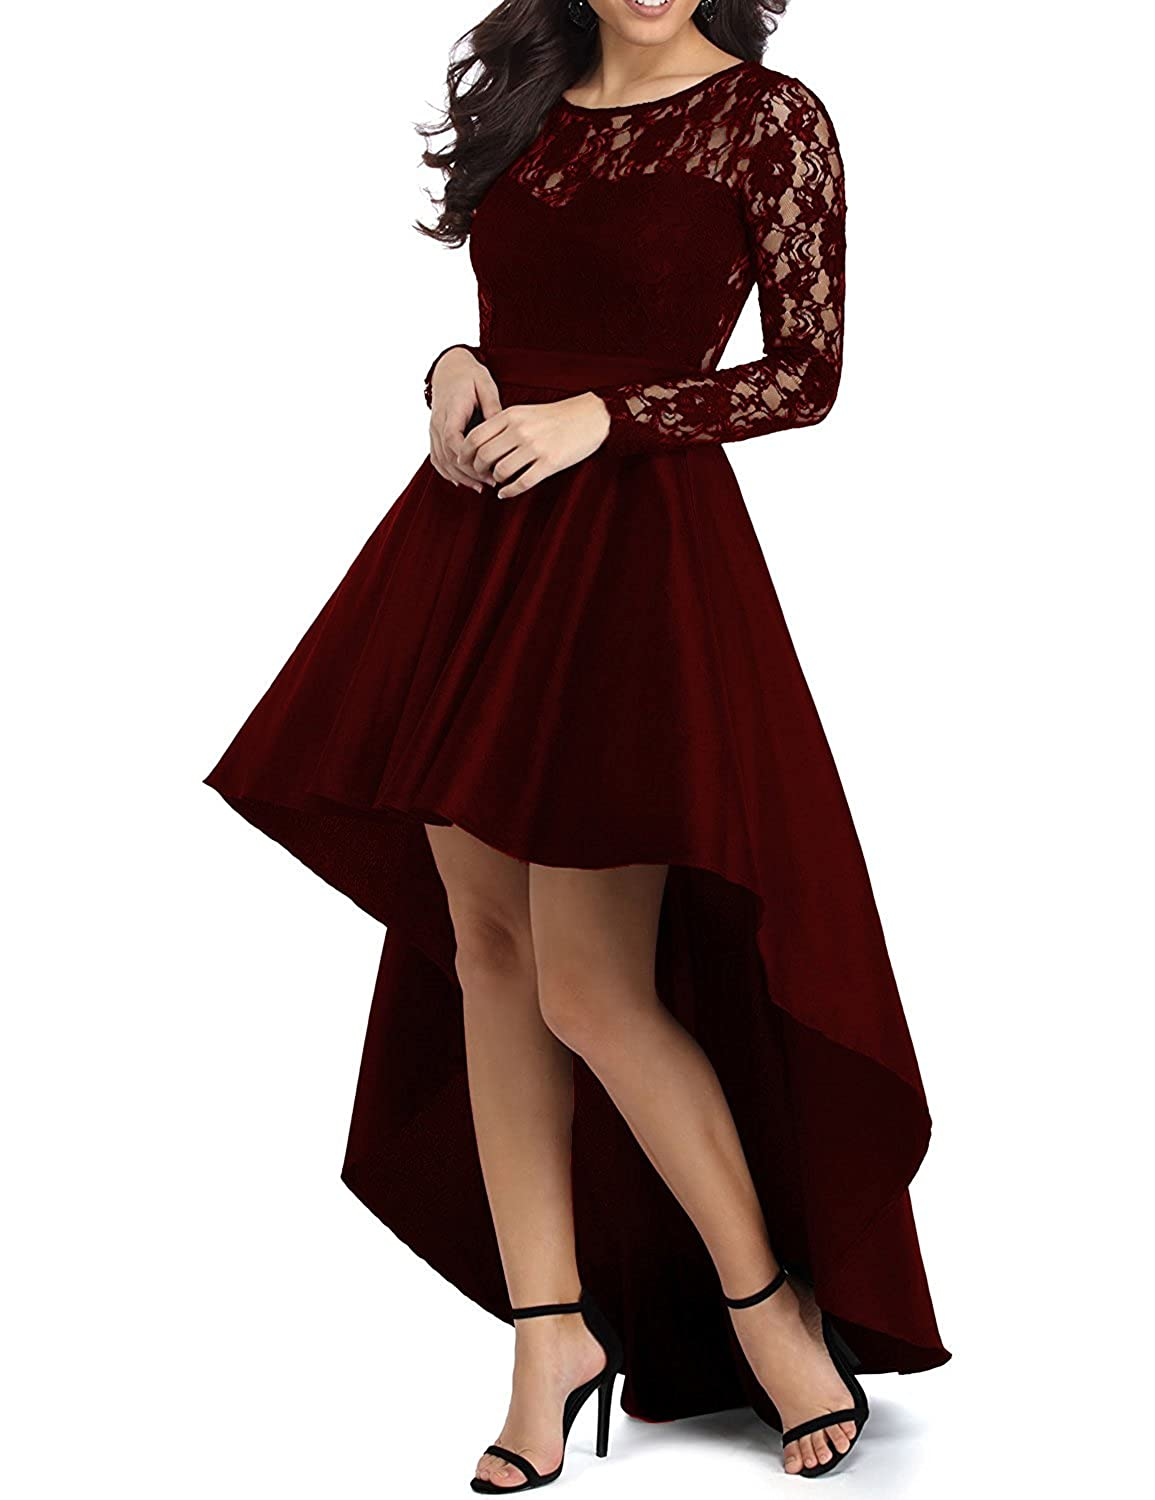 Lily Wedding Womens Long Sleeve High Low Prom Dresses 2018 Formal Evening Party Ball Gowns P058